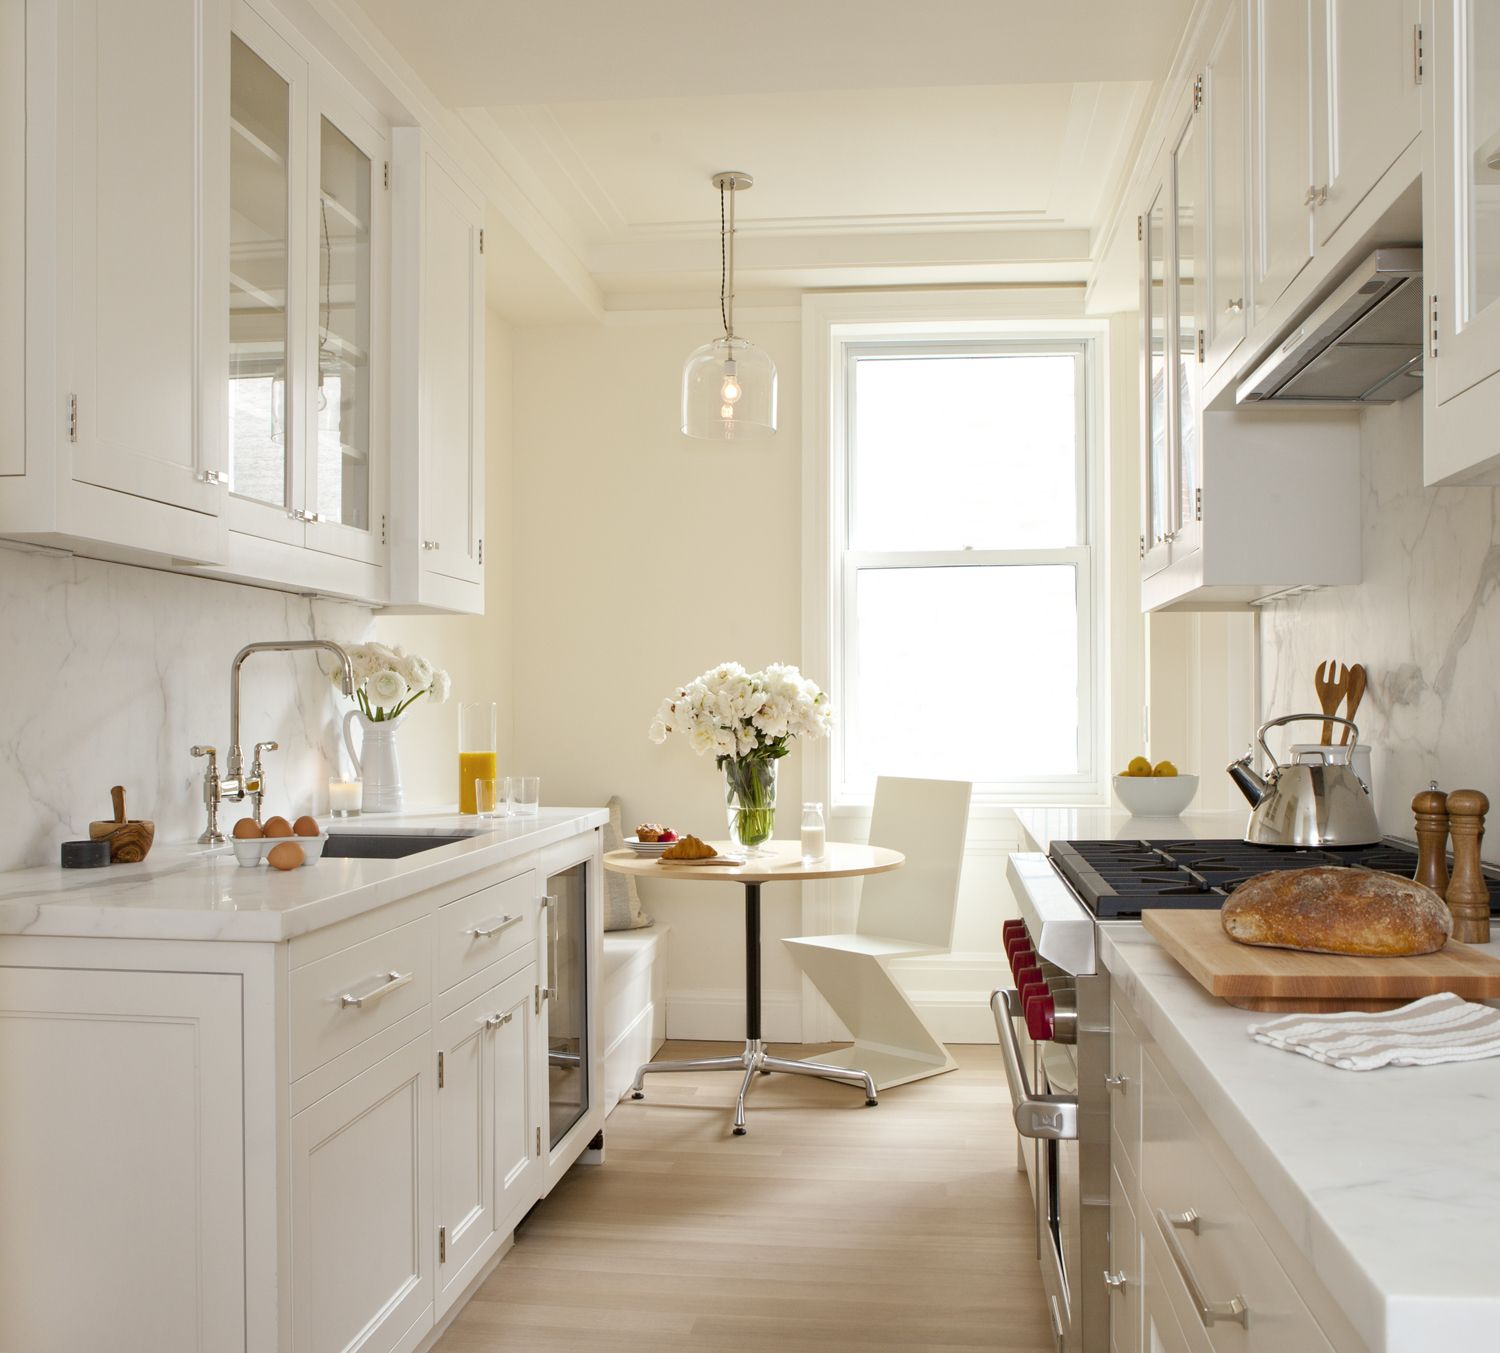 White galley kitchen and banquette seating by Alyssa Kapito ...